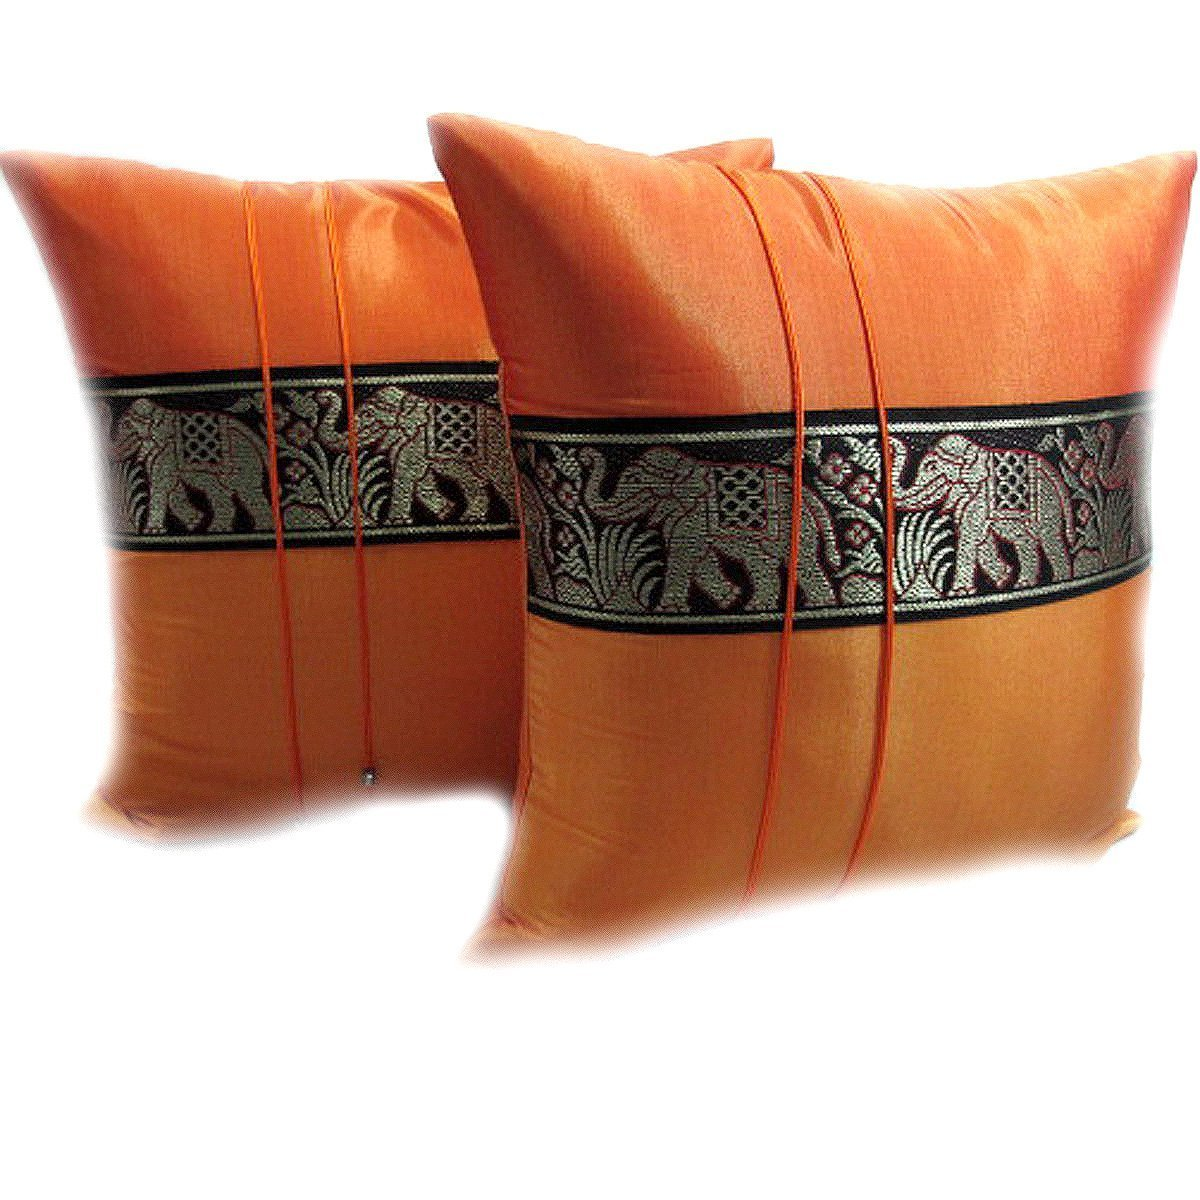 PAPAYA SHOP DOUBLE 2 BEAUTIFUL BIG ELEPHANT THROW CUSHION COVER/PILLOW CASE HANDMADE BY THAI SILK AND COTTON FOR DECORATIVE SOFA, CAR AND LIVING ROOM SIZE 16 X 16 INCHES (ORANGE AND ORANGE)